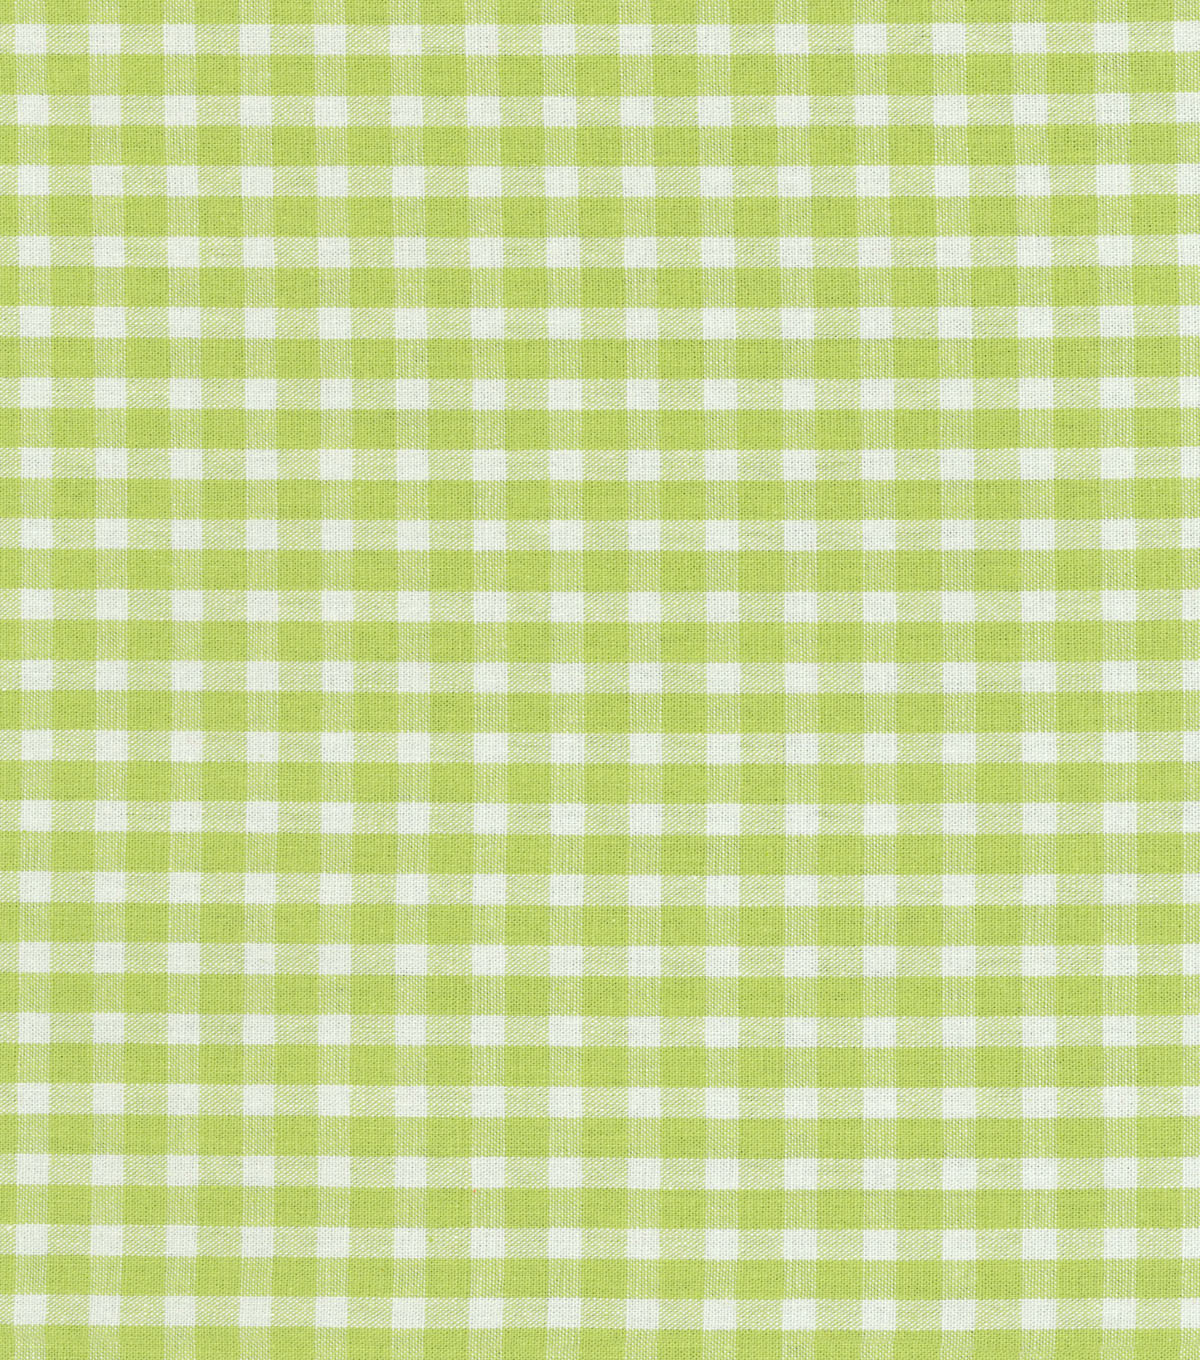 Home Decor 8\u0022x8\u0022 Fabric Swatch-PKL Double Check Meadow